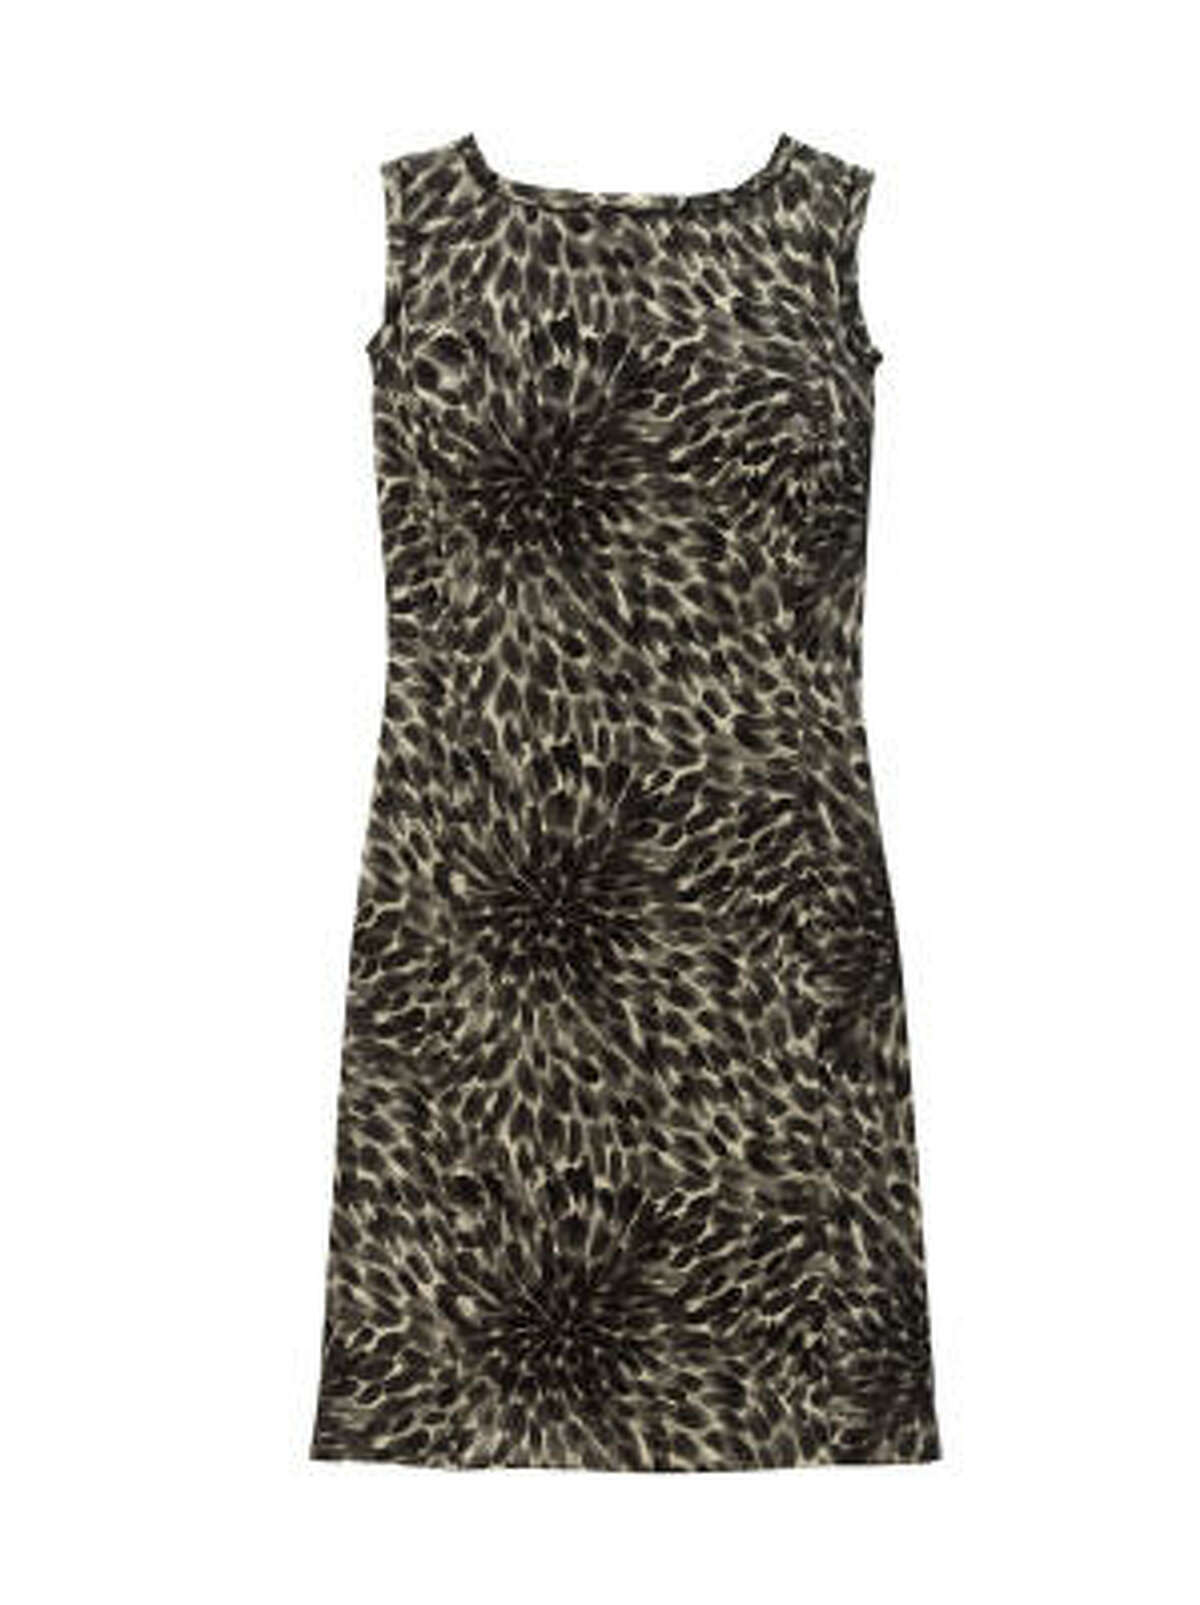 Dahlia sheath dress, $158, available in sizes up to 14 at Ann Taylor stores and up to size 18 online at anntaylor.com